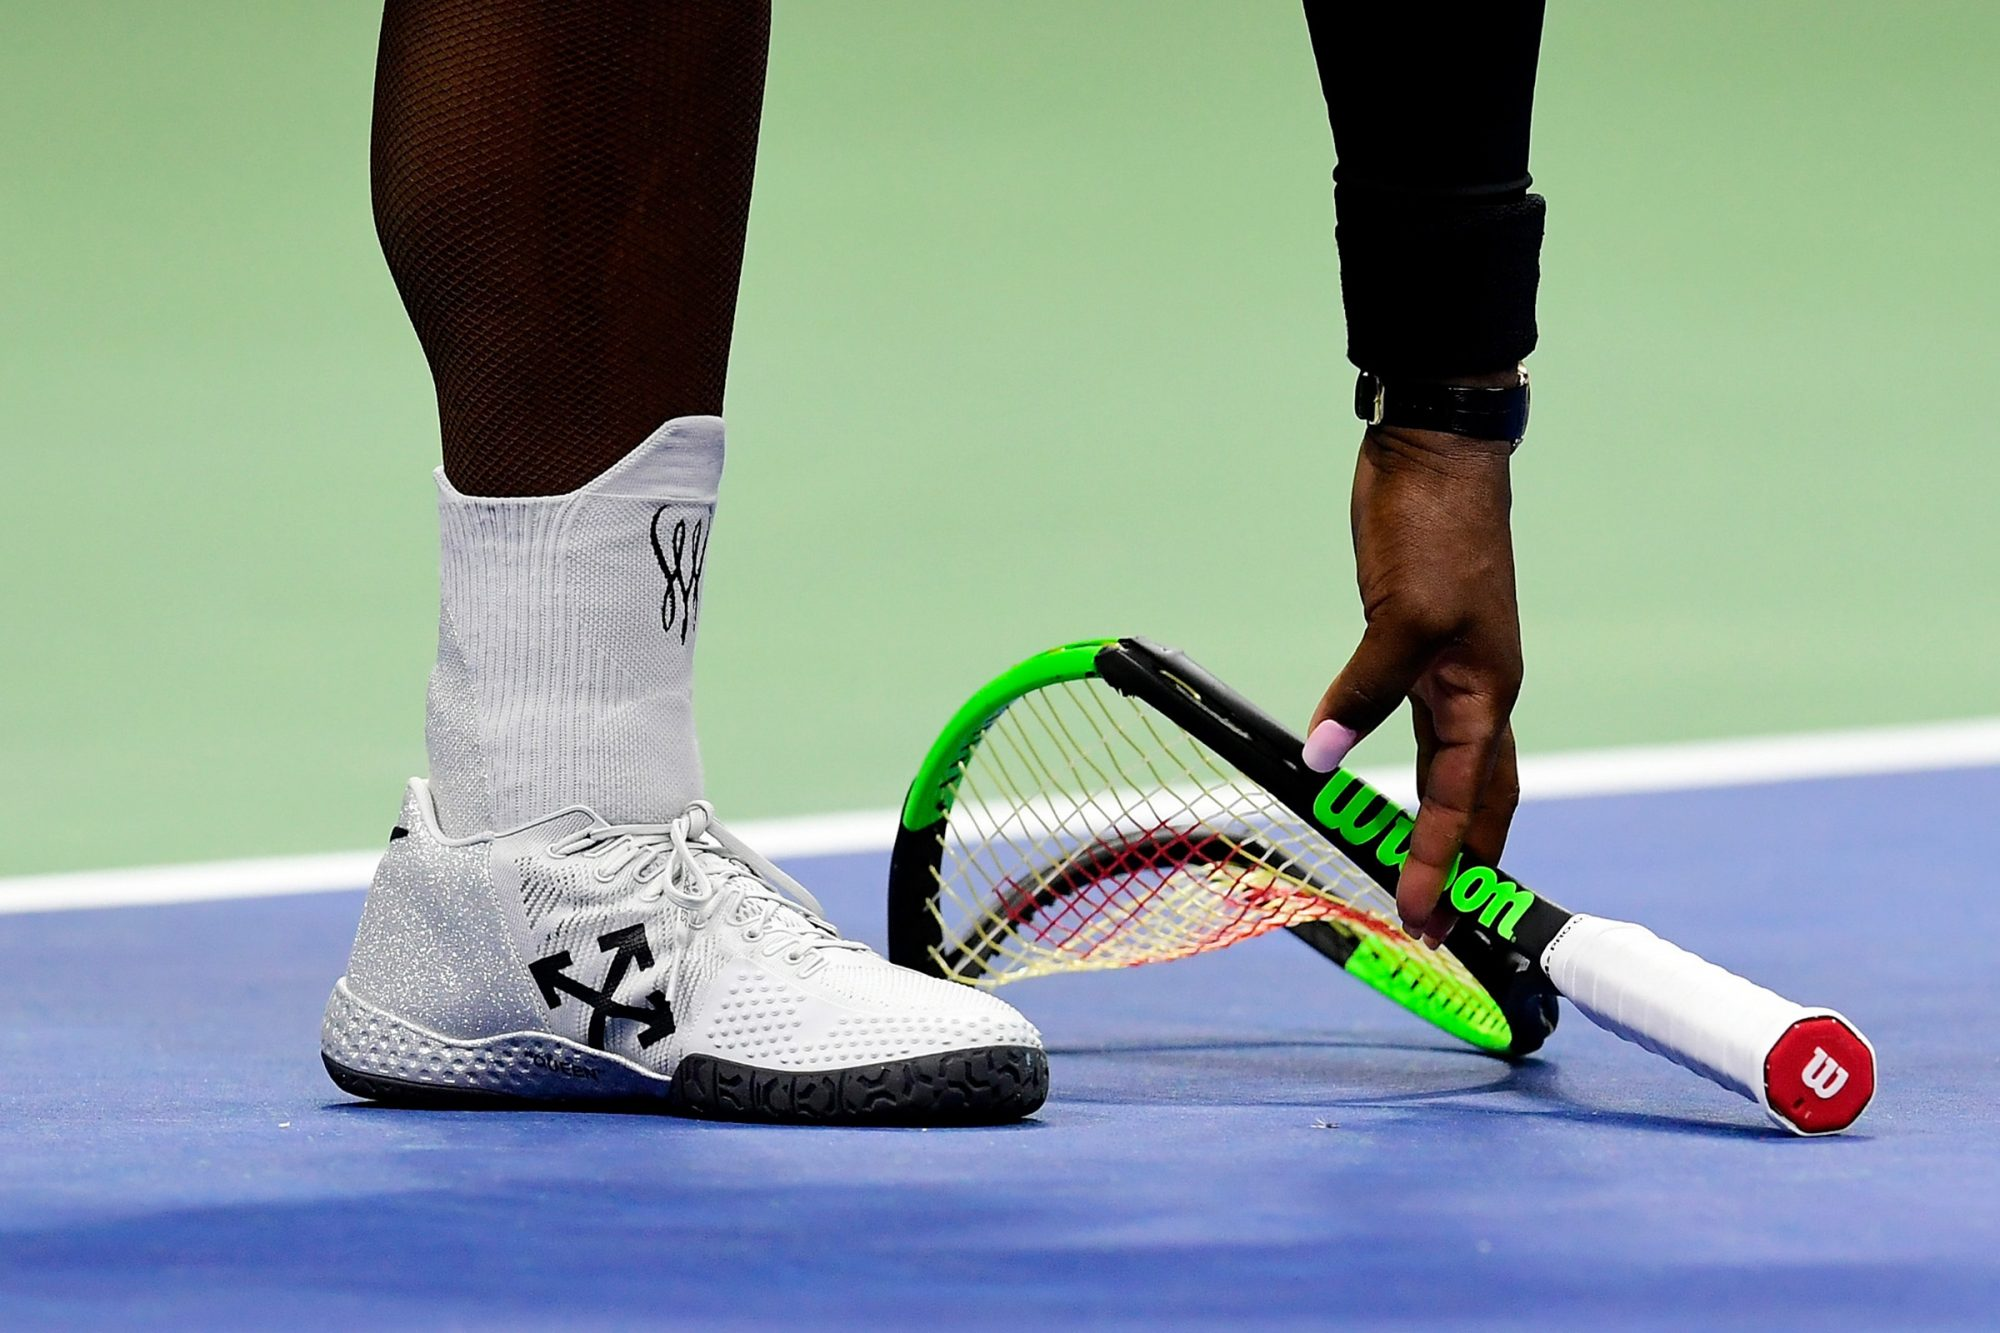 Serena Williams of the United States after smashing her racket during her Women's Singles finals match against Naomi Osaka of Japan on Day Thirteen of the 2018 US Open at the USTA Billie Jean King National Tennis Center on September 8, 2018 in the Flushing neighborhood of the Queens borough of New York City